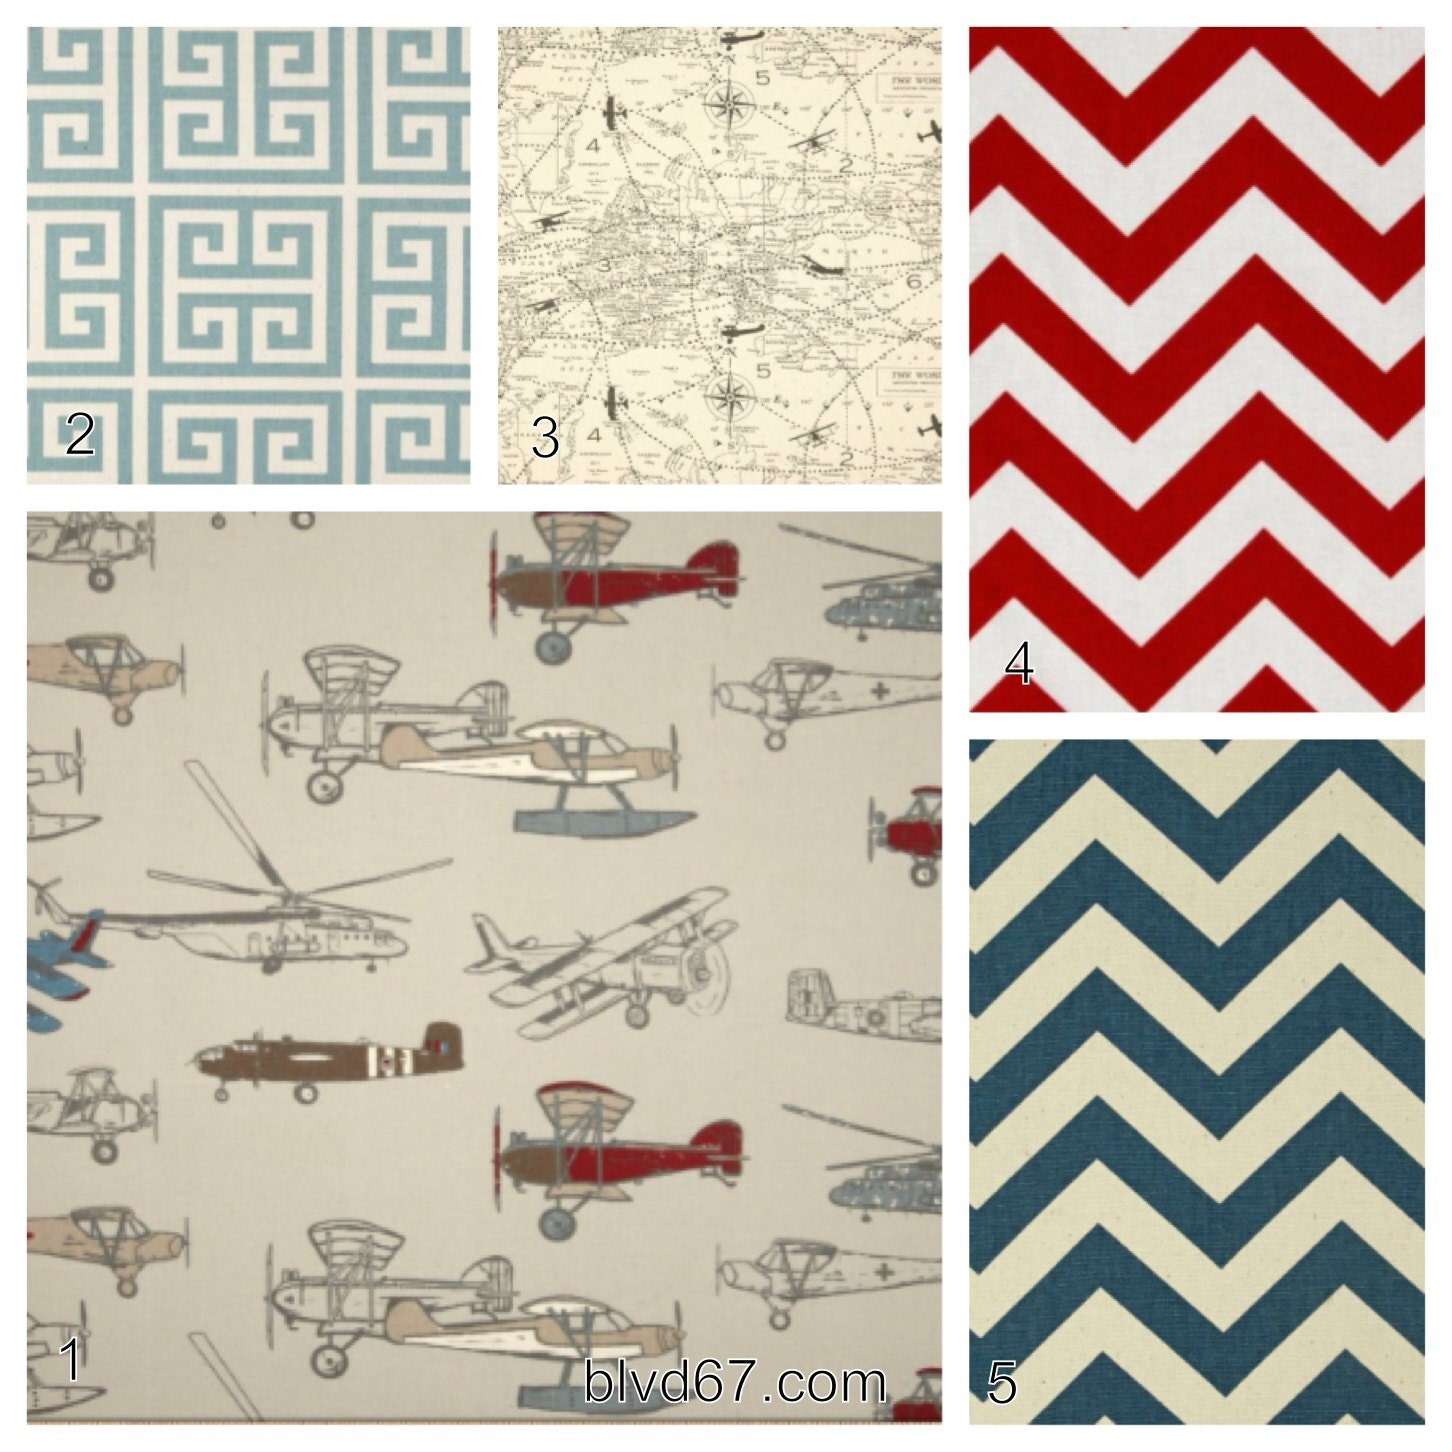 4 piece crib bedding set in vintage airplanes including colors red, denim, brown.